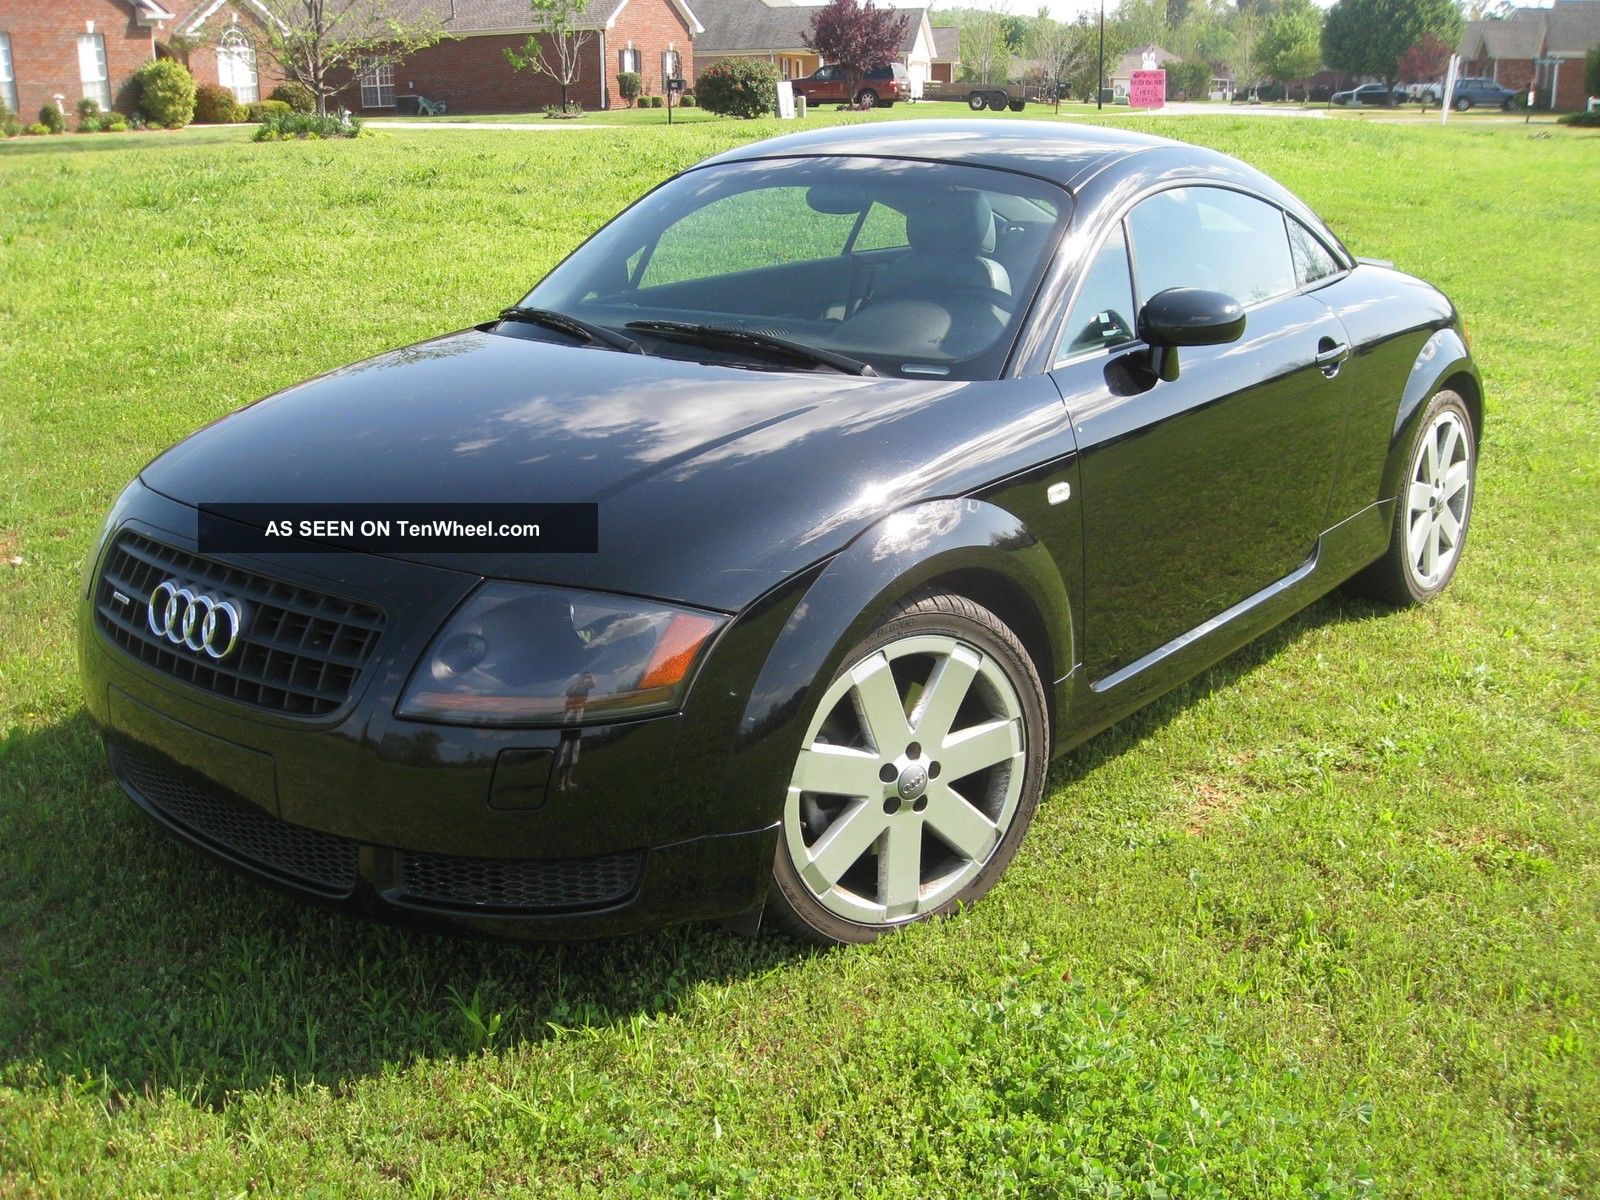 2003 audi tt quattro base coupe 2 door 1 8l. Black Bedroom Furniture Sets. Home Design Ideas